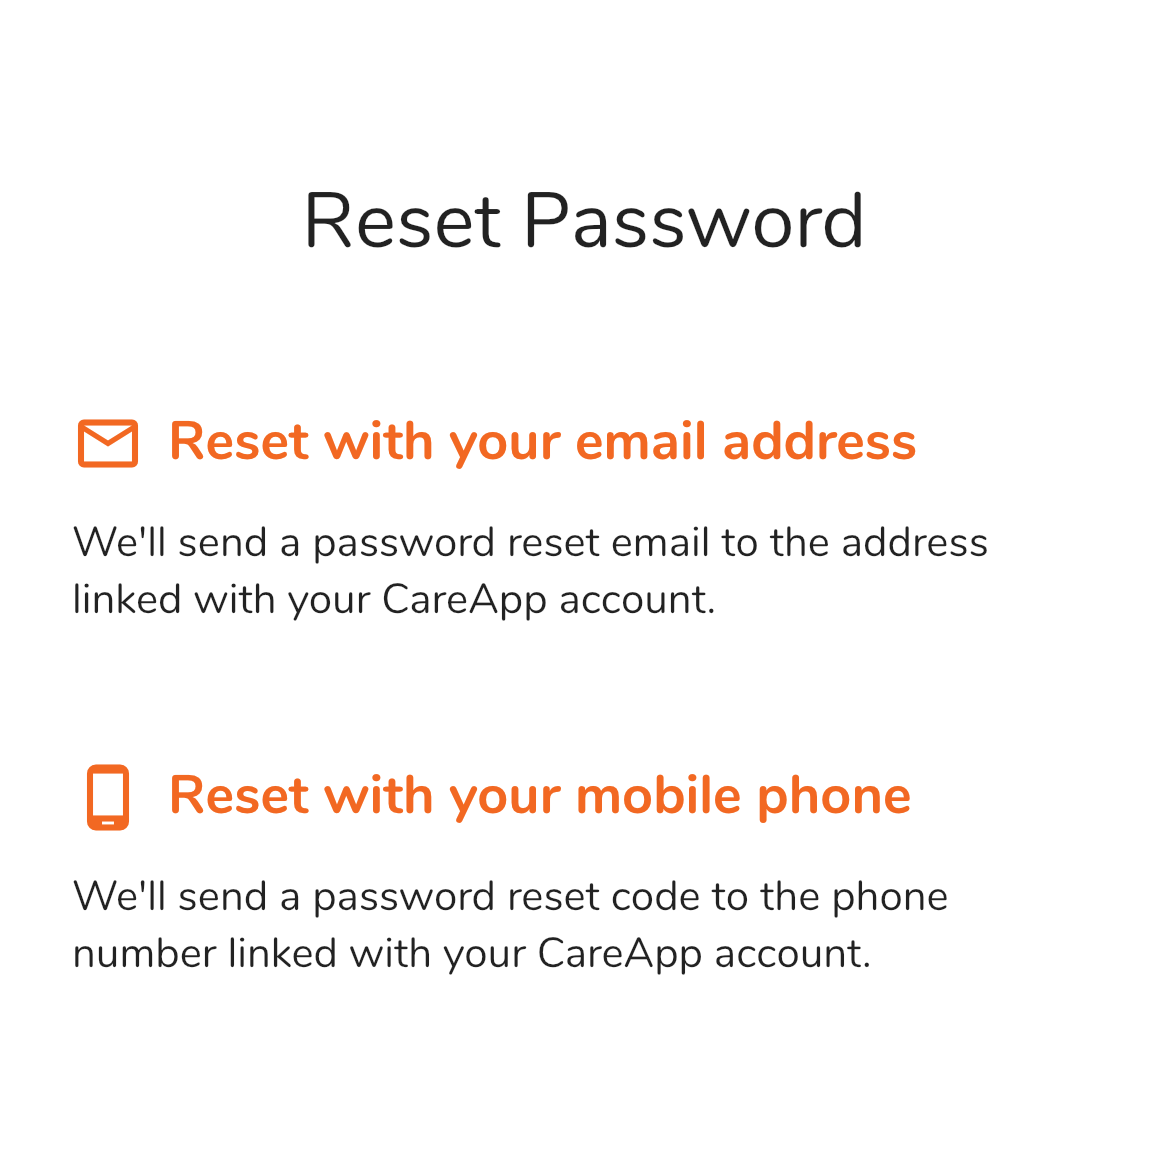 You can now reset your password with your email address or phone